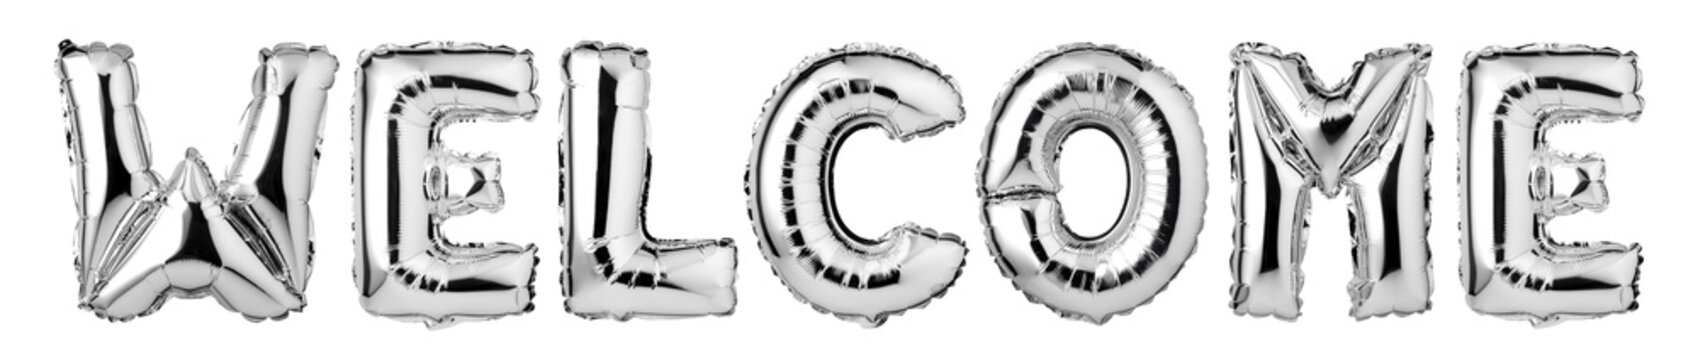 Upper case letters WELCOME from silver balloons, Isolated on white background